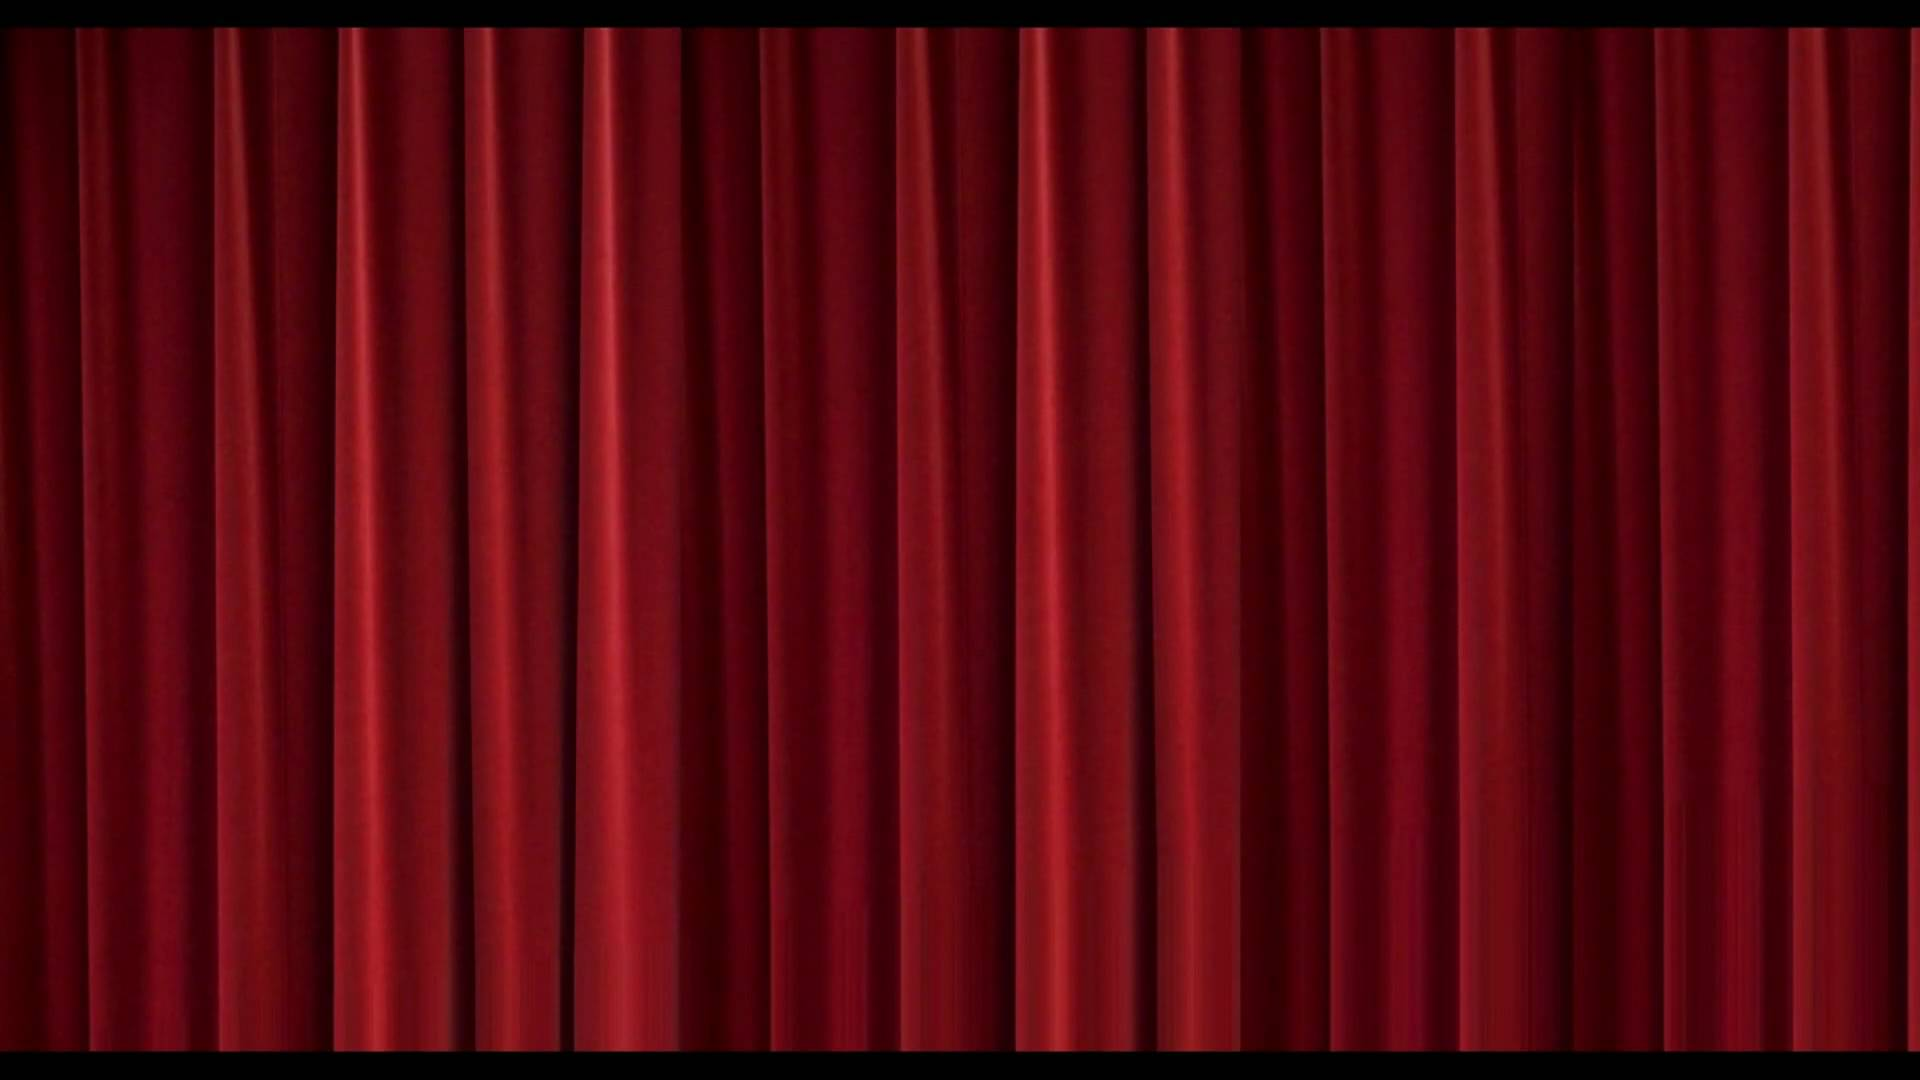 Cartoon Fall Wallpaper High Def Free Photo Velvet Stage Curtain Orchestra Performance